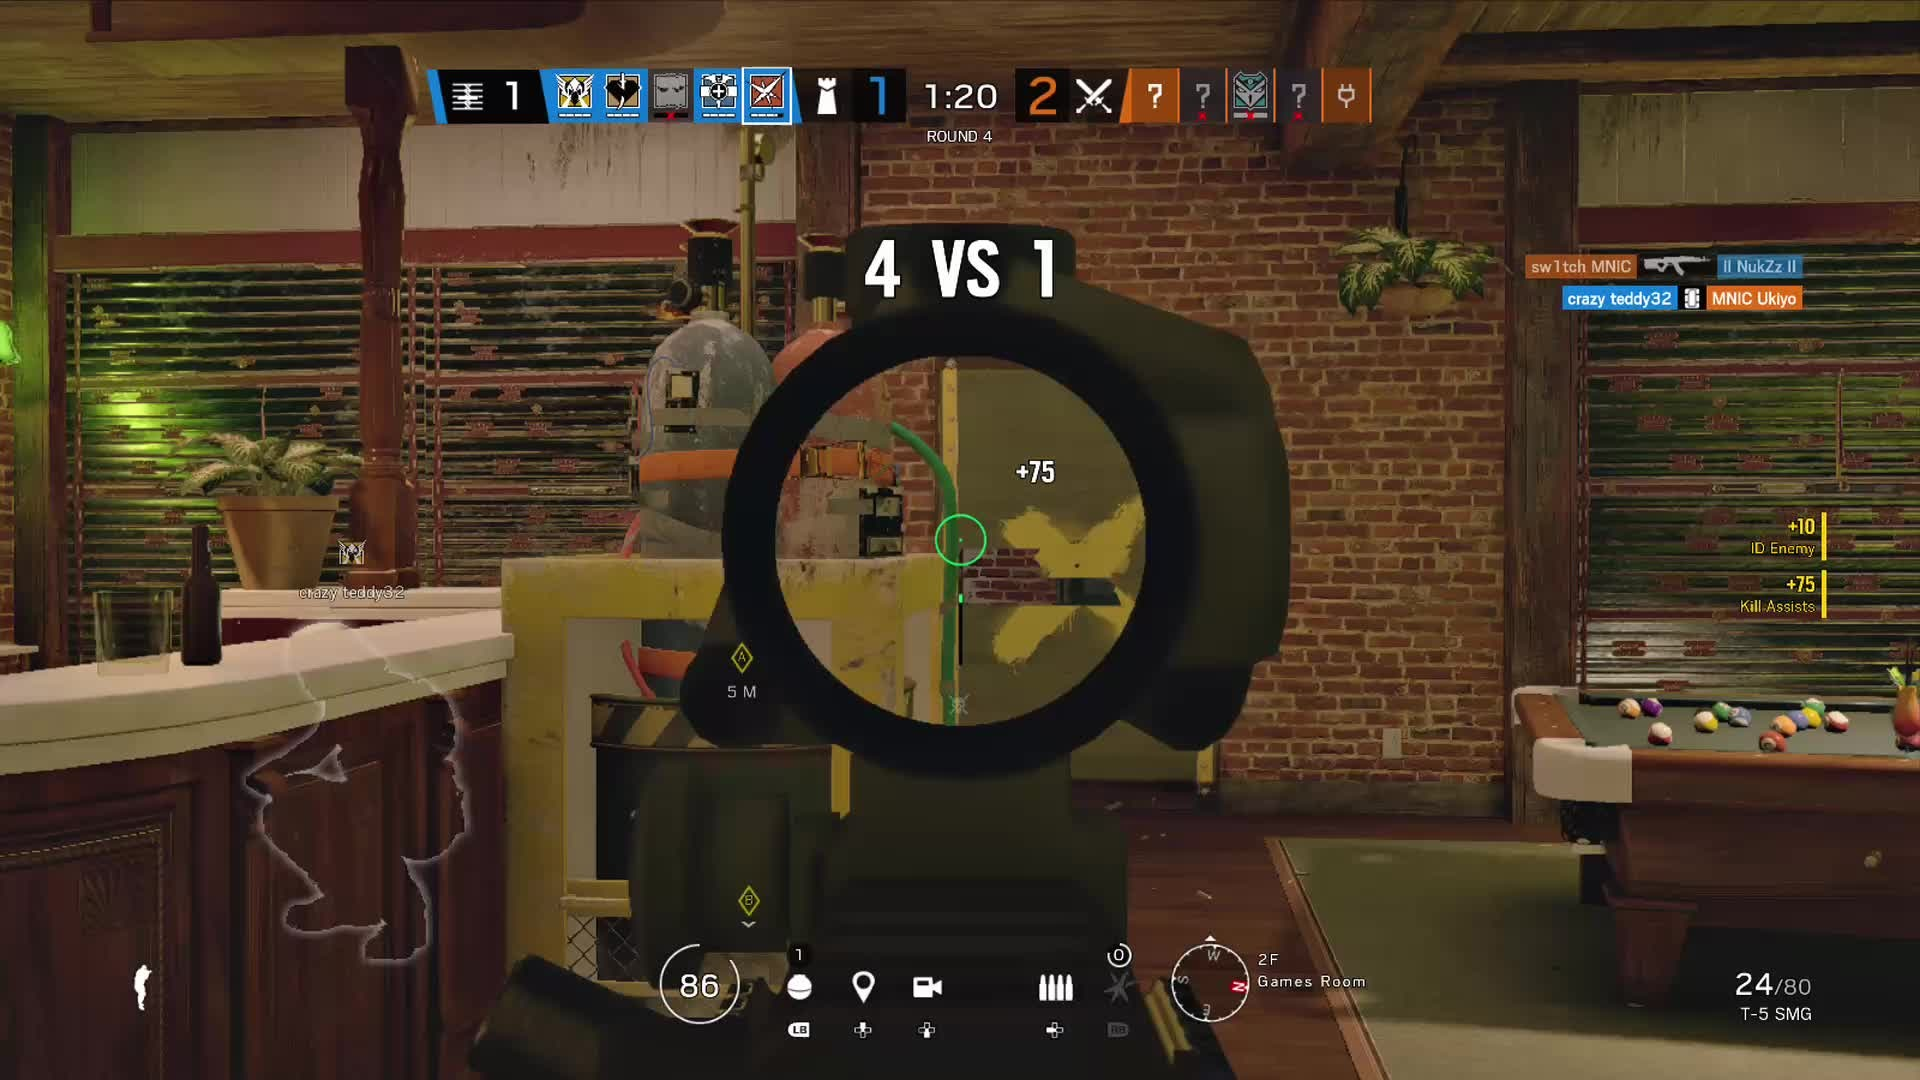 Rainbow Six: General - Ash quite literally flied away😂 video cover image 0